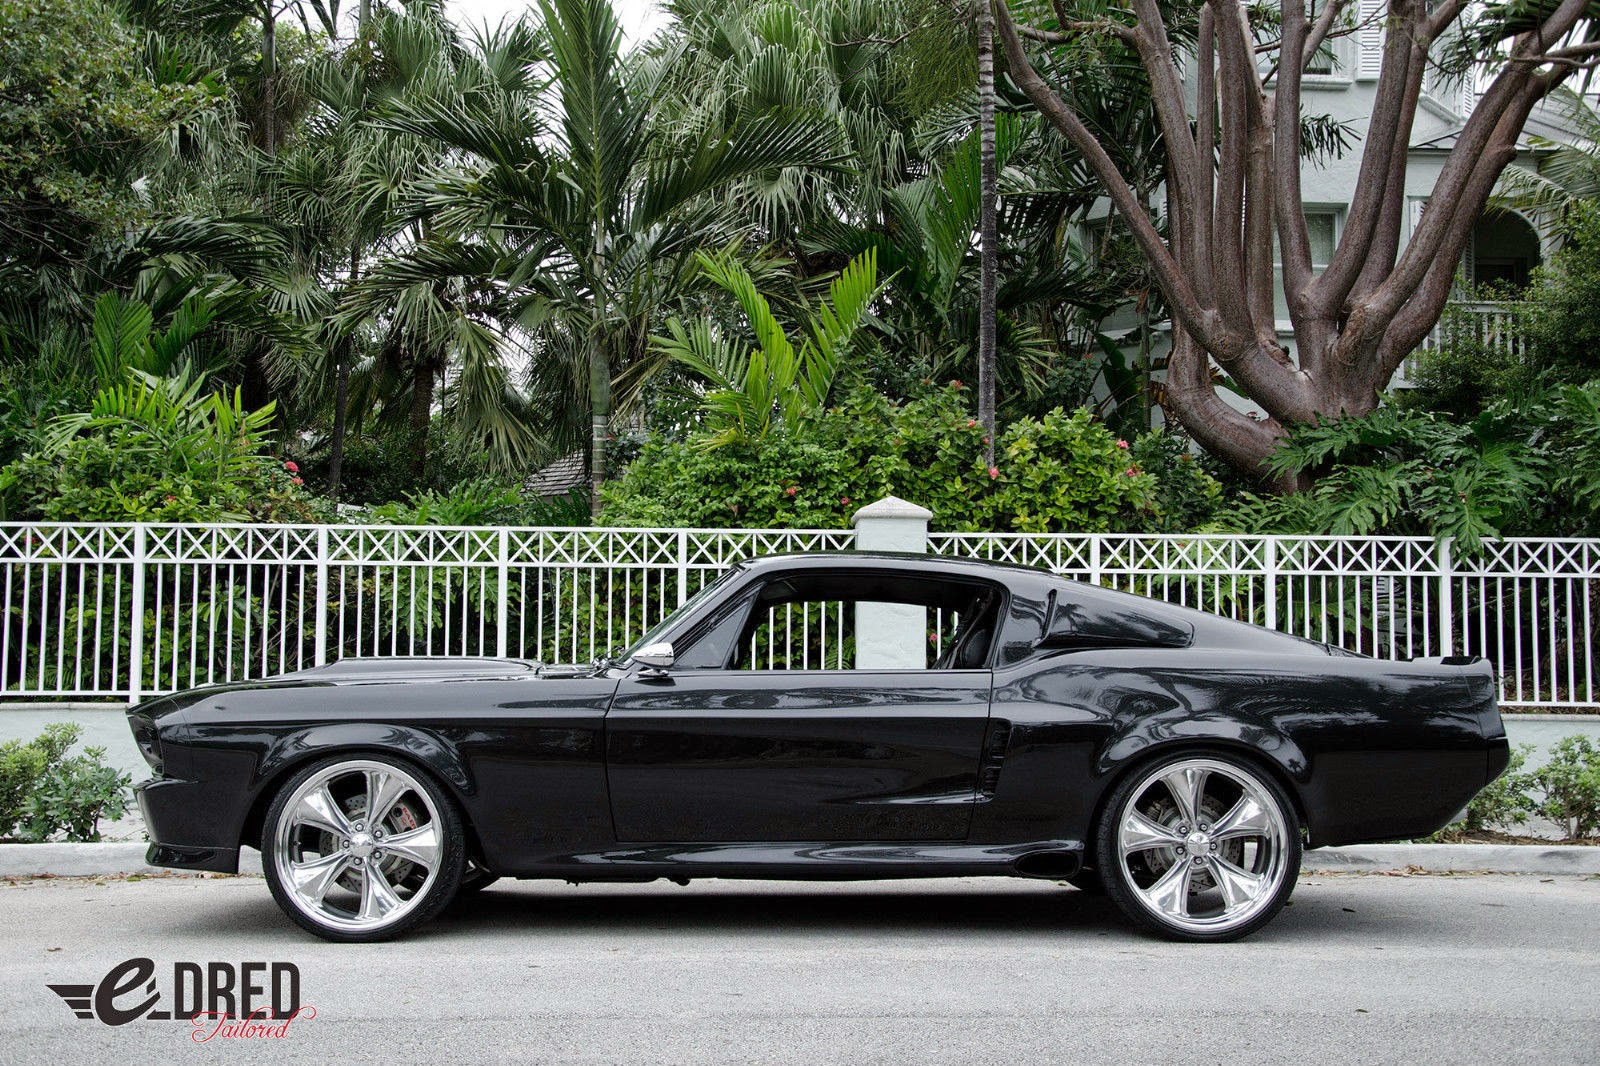 2014 05 04 For Sale American Muscle Cars